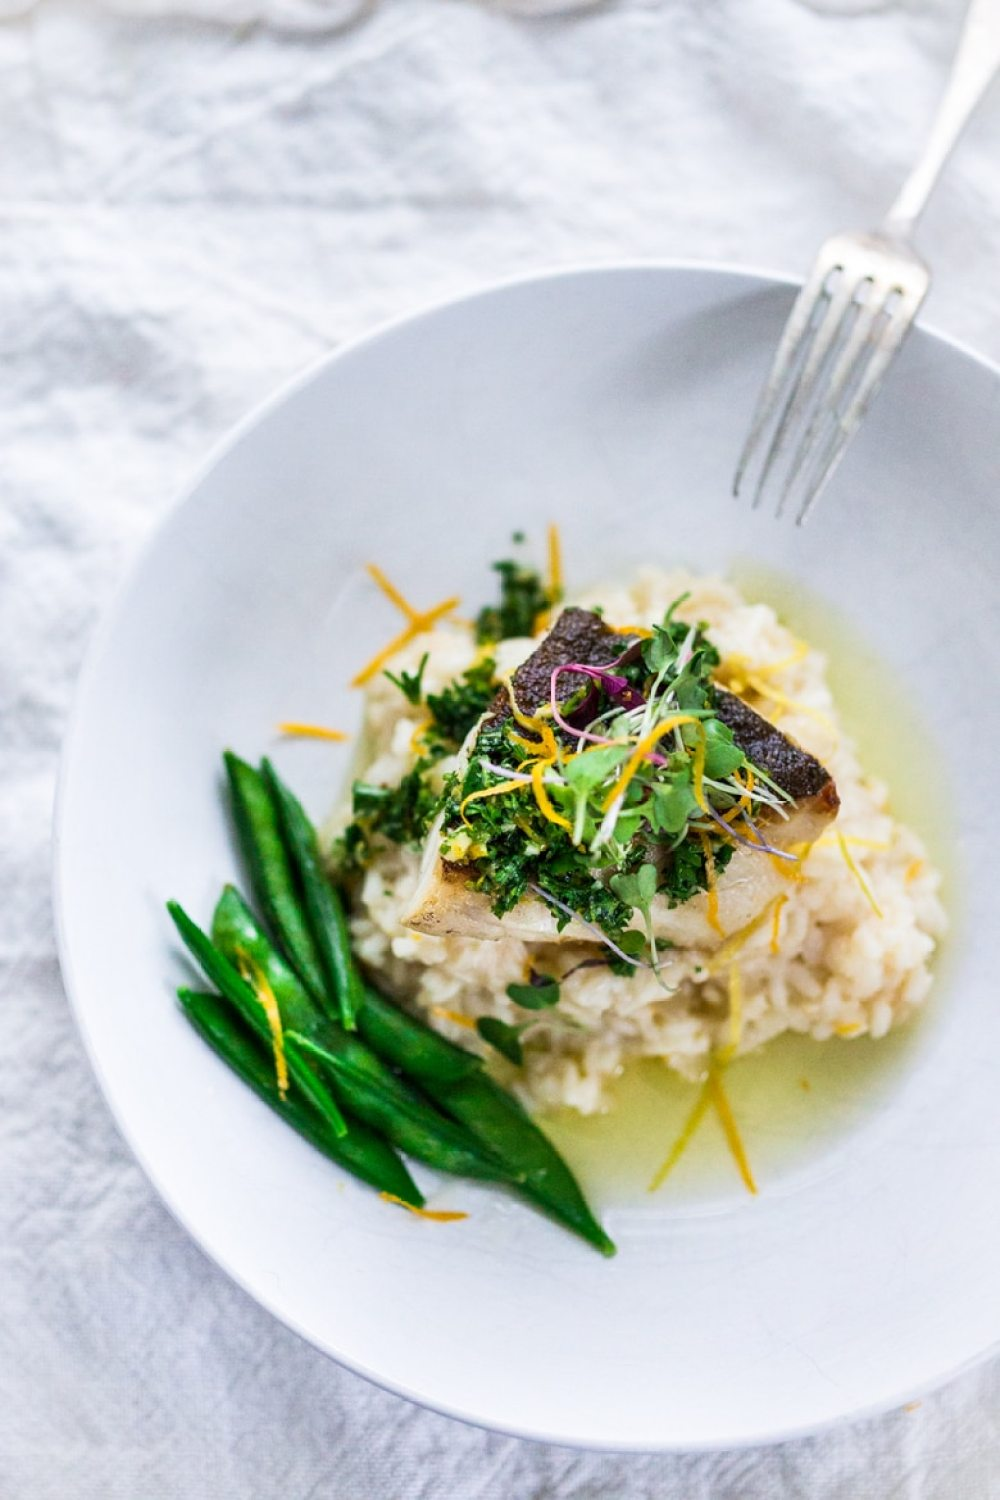 ... Meyer Lemon Risotto and Gremolata- a flavorful green herb sauce. | ww